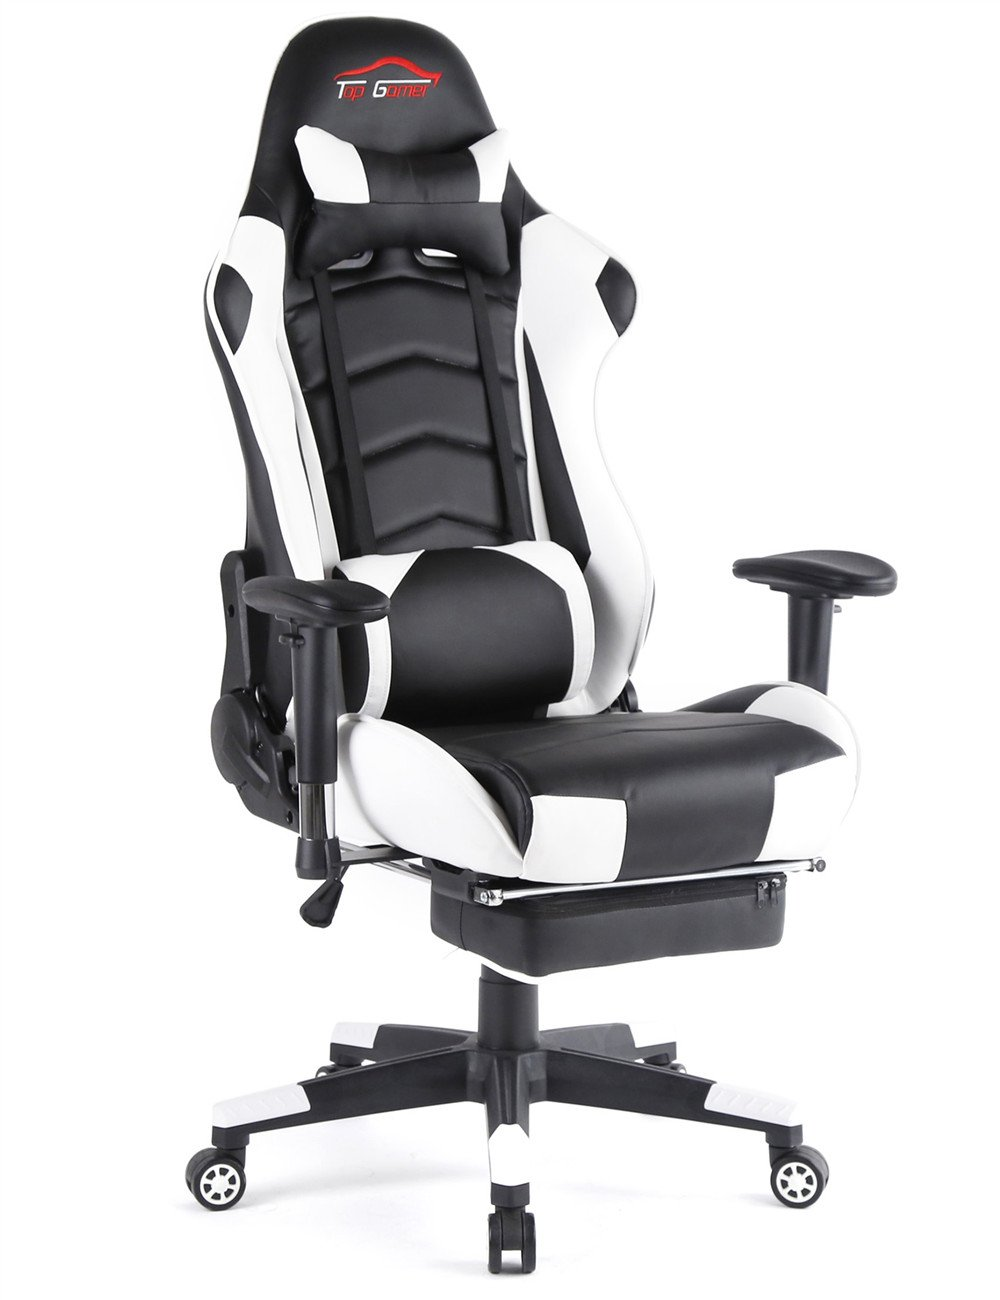 Ergonomic Gaming Chair PC Game Computer Office Chair with Footrest (White)